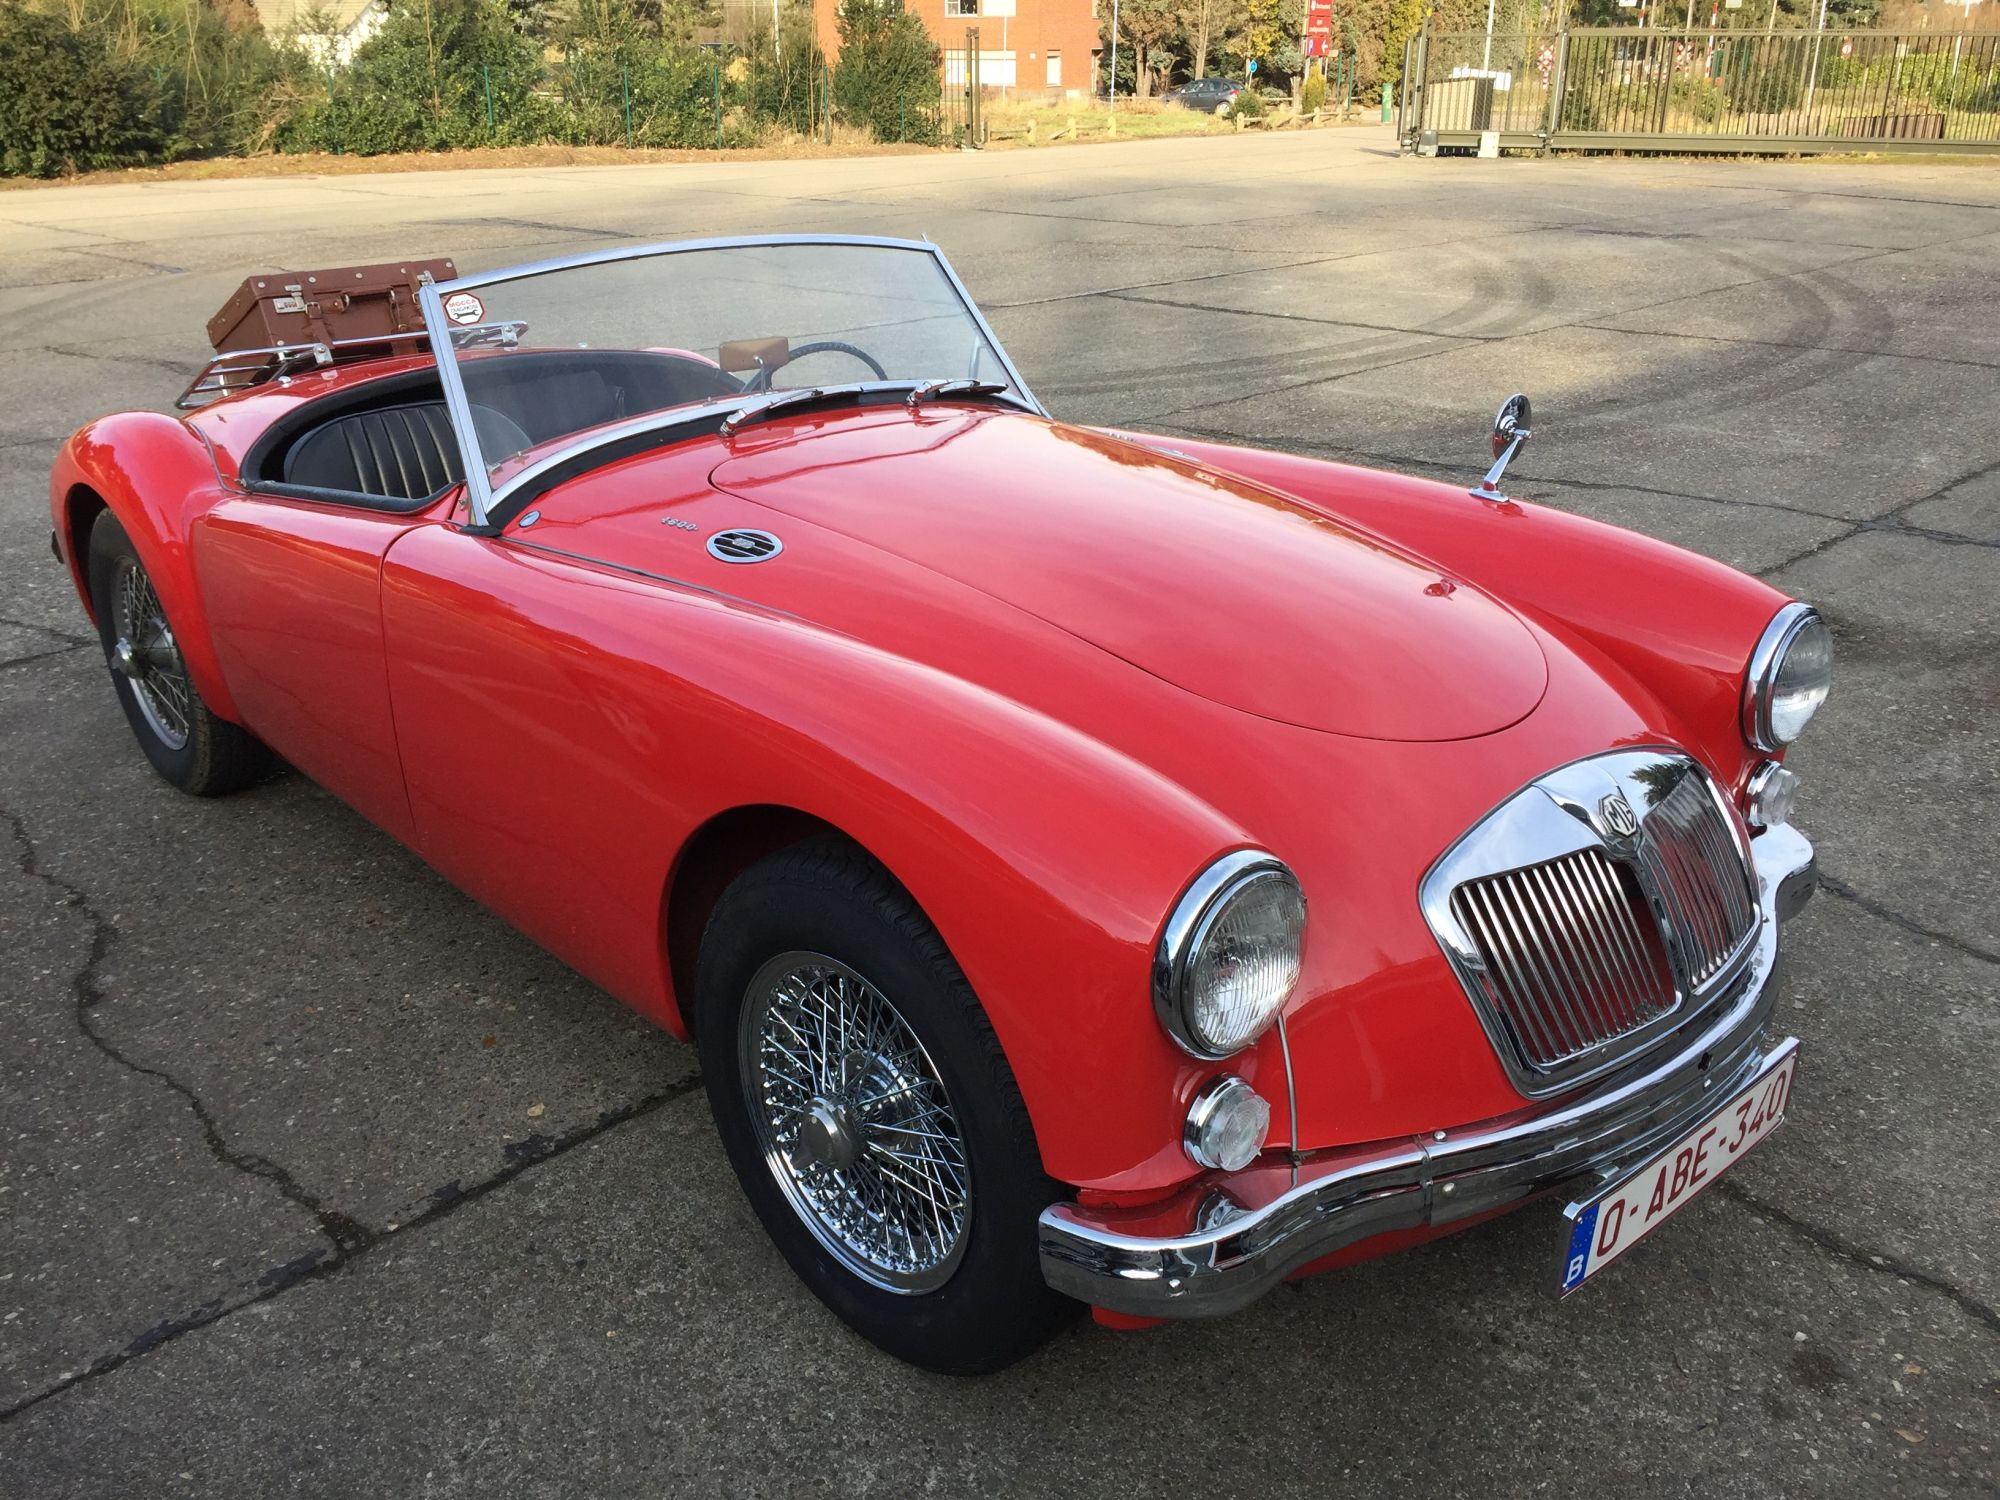 hight resolution of breathtaking mga wiring diagram for 1960 photos best image 1960 mga roadster my